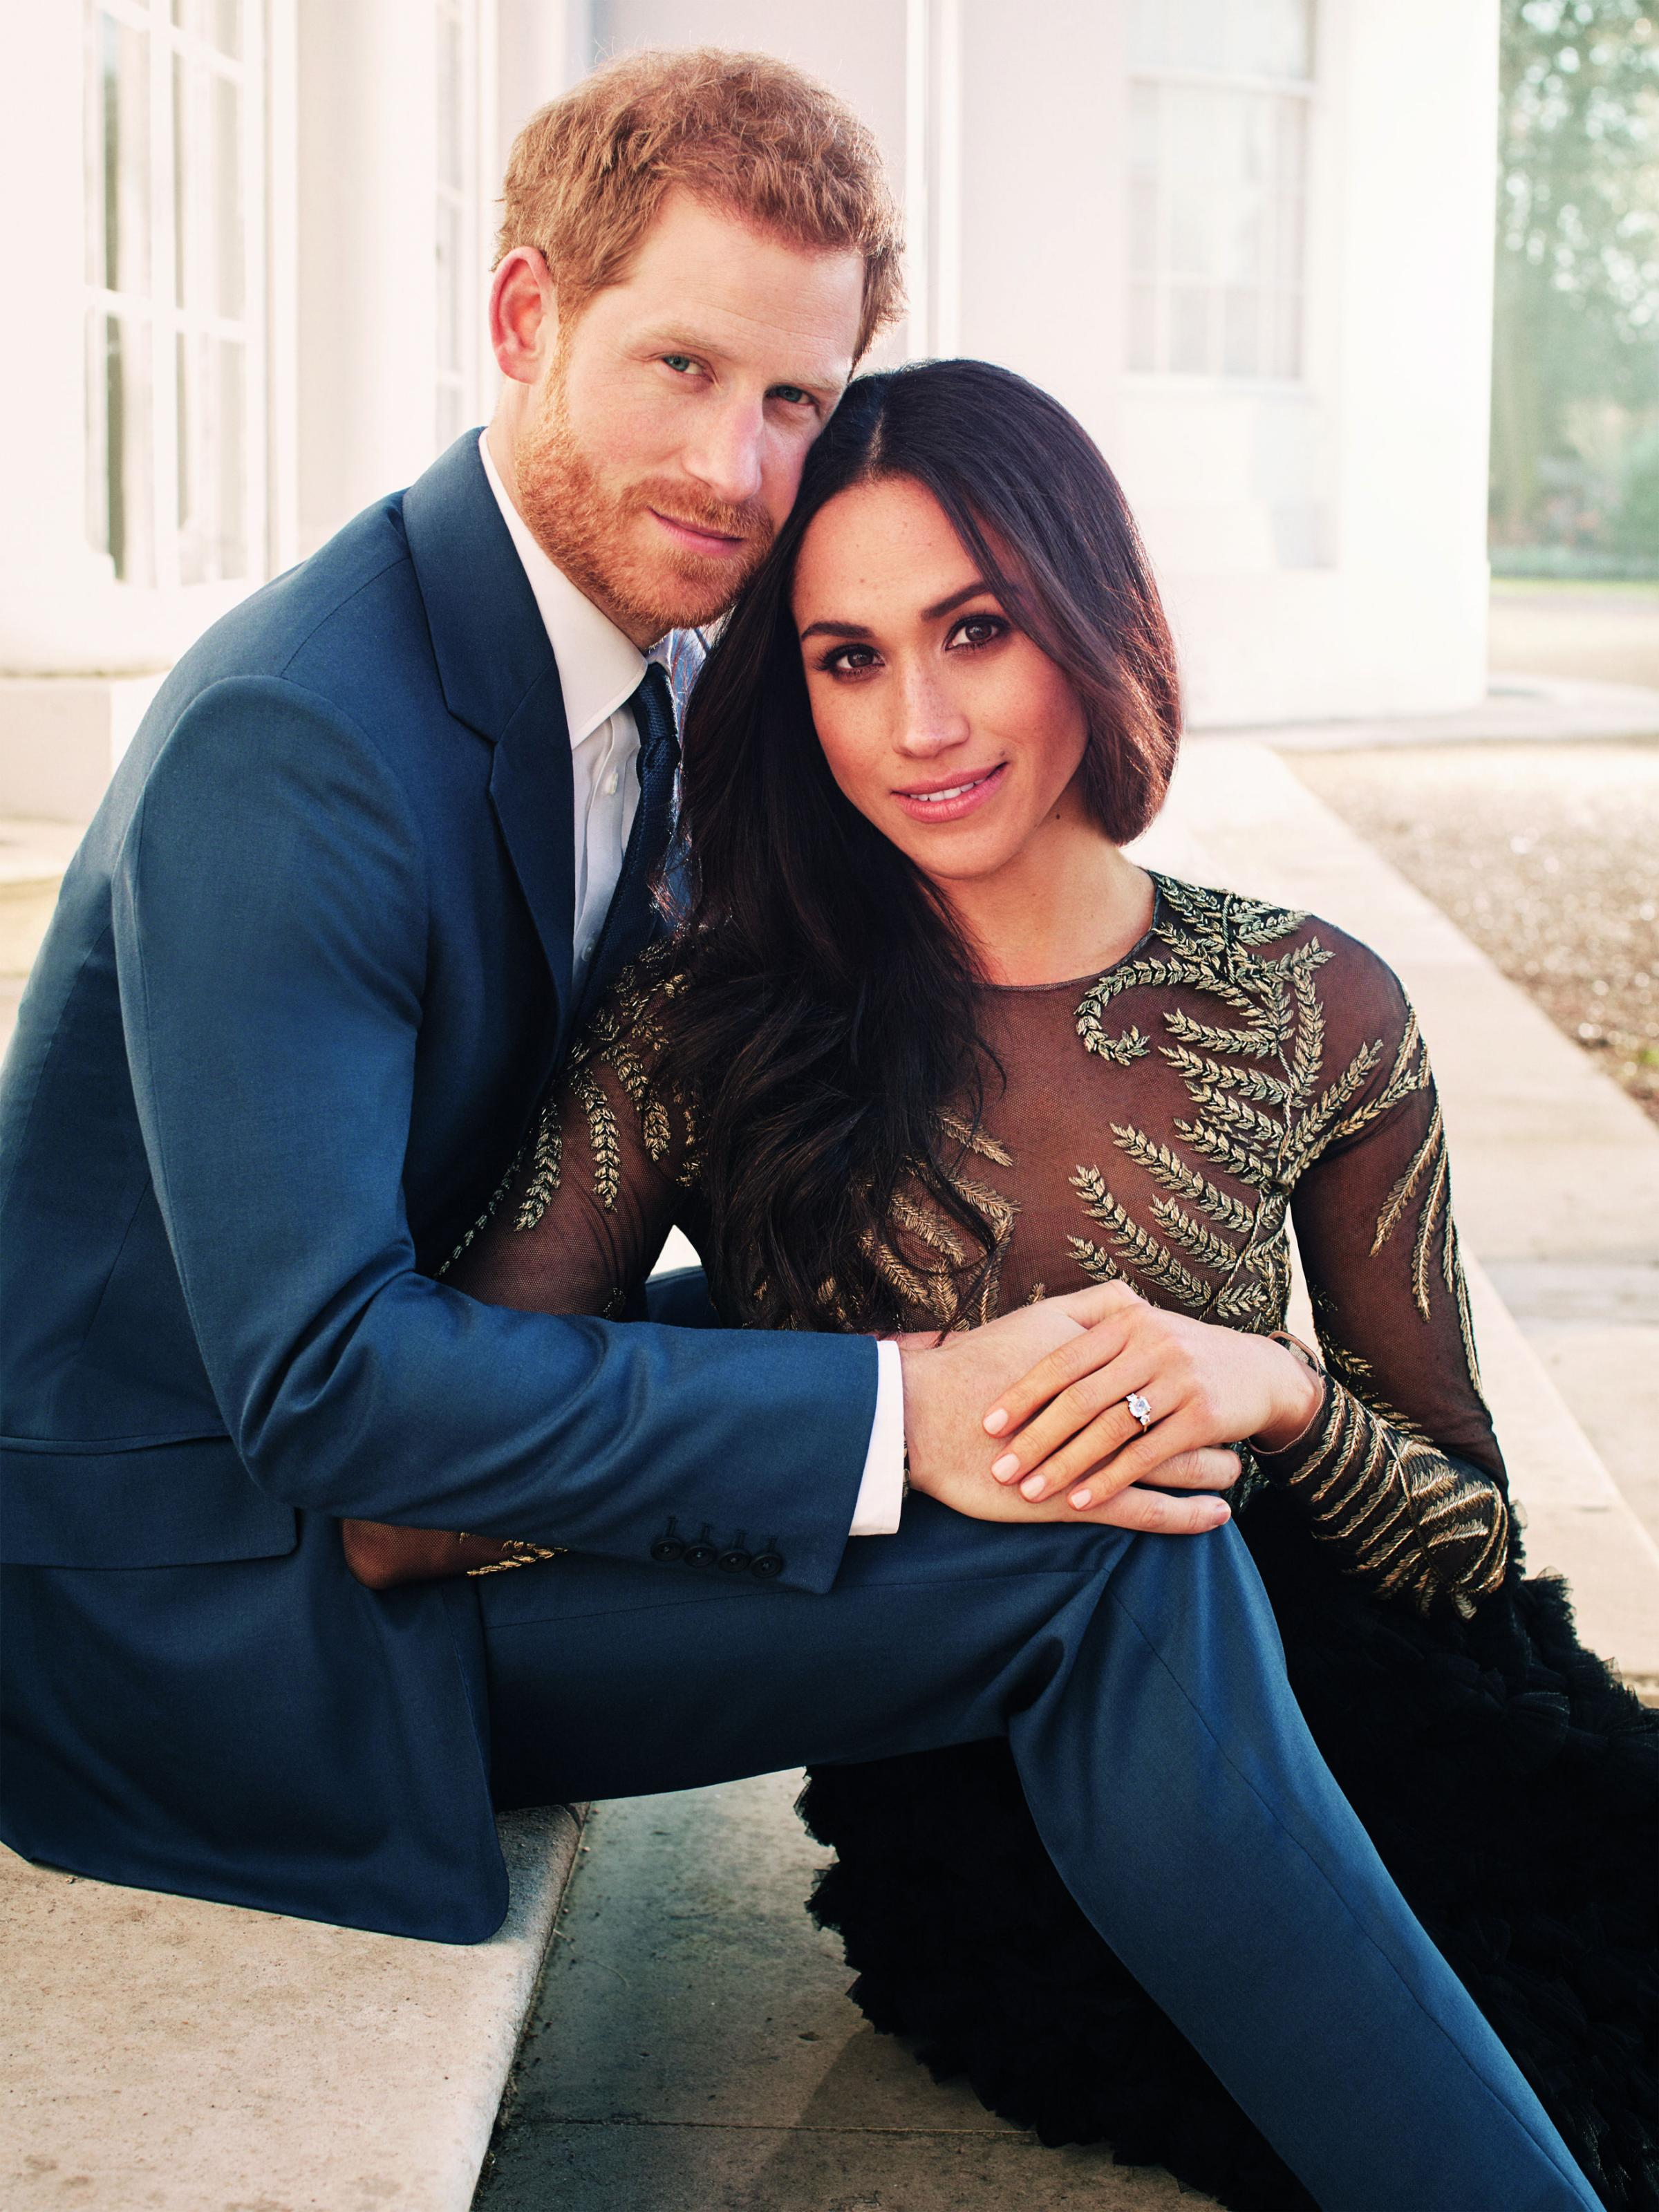 No Clydebank street parties for Prince Harry and Meghan Markle